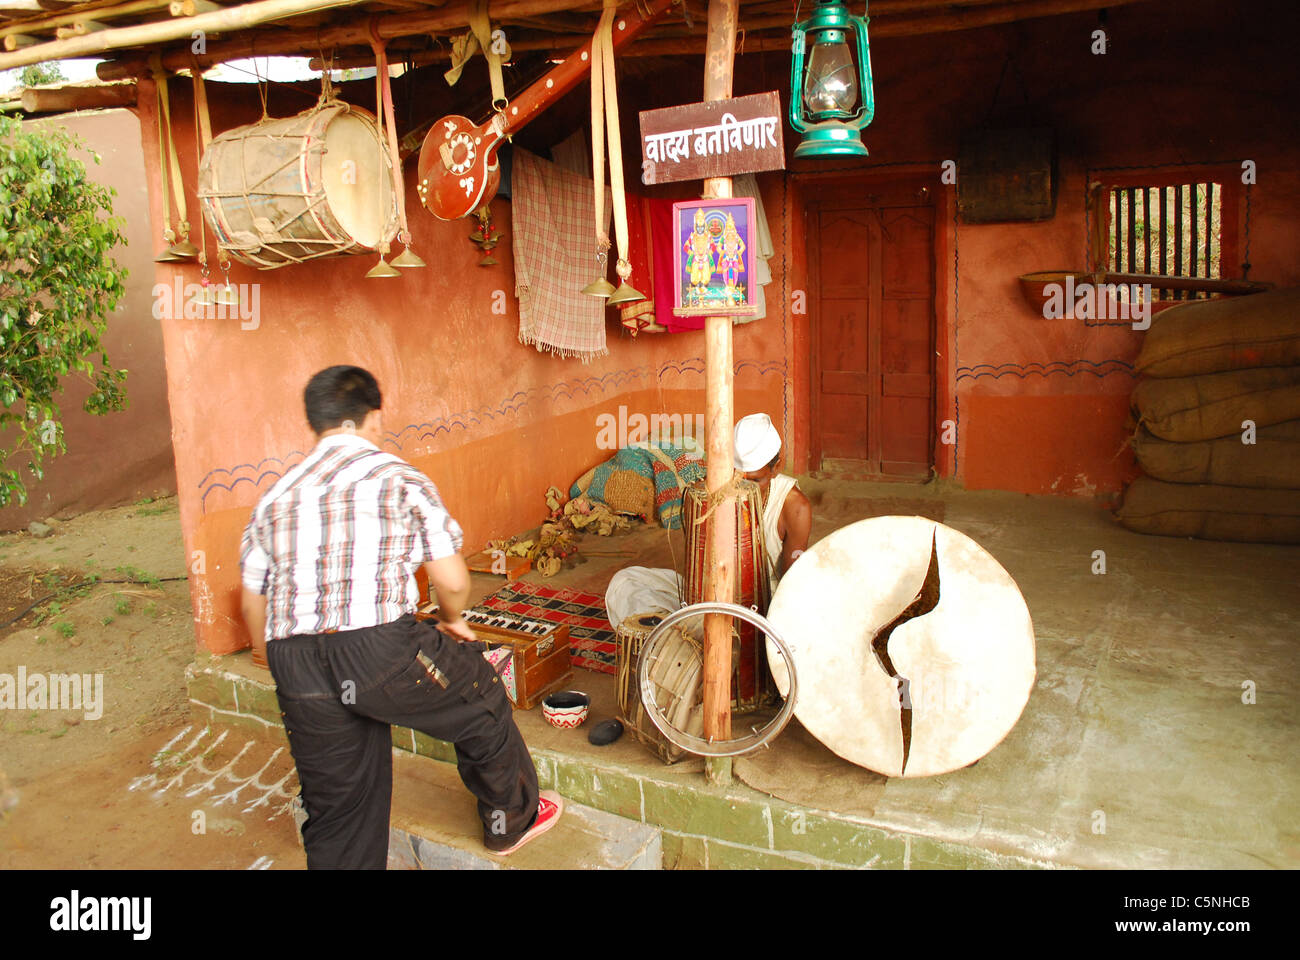 instrumental shop - Stock Image